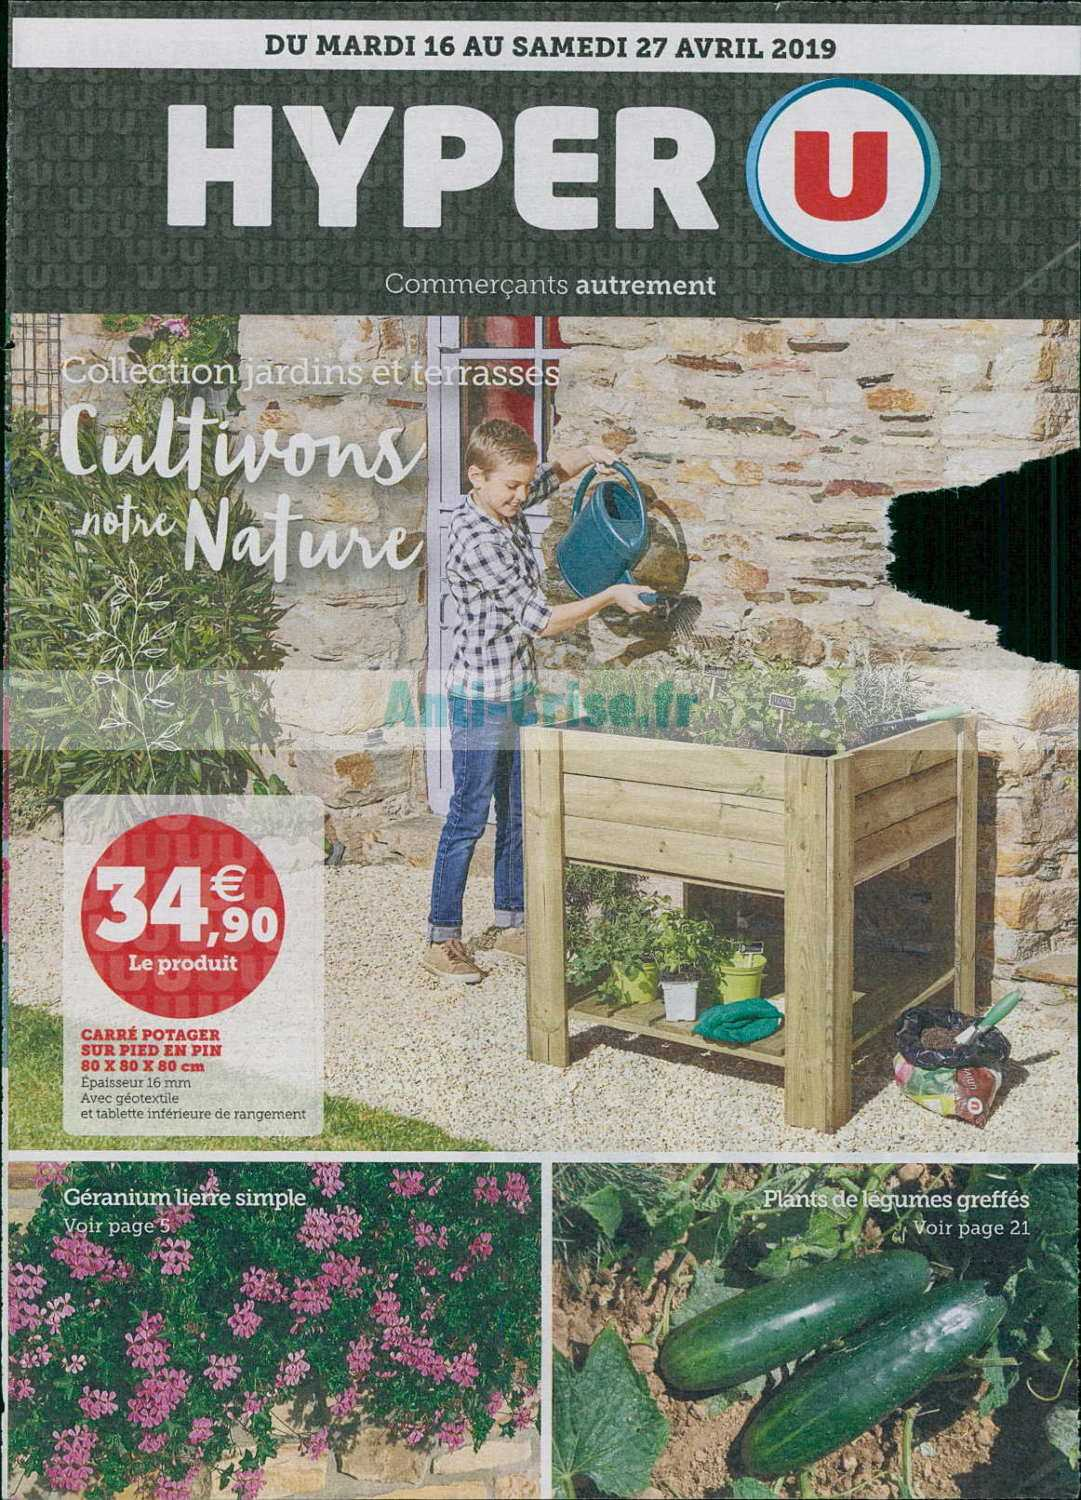 Catalogue Hyper U Du 16 Au 27 Avril 2019 Jardin